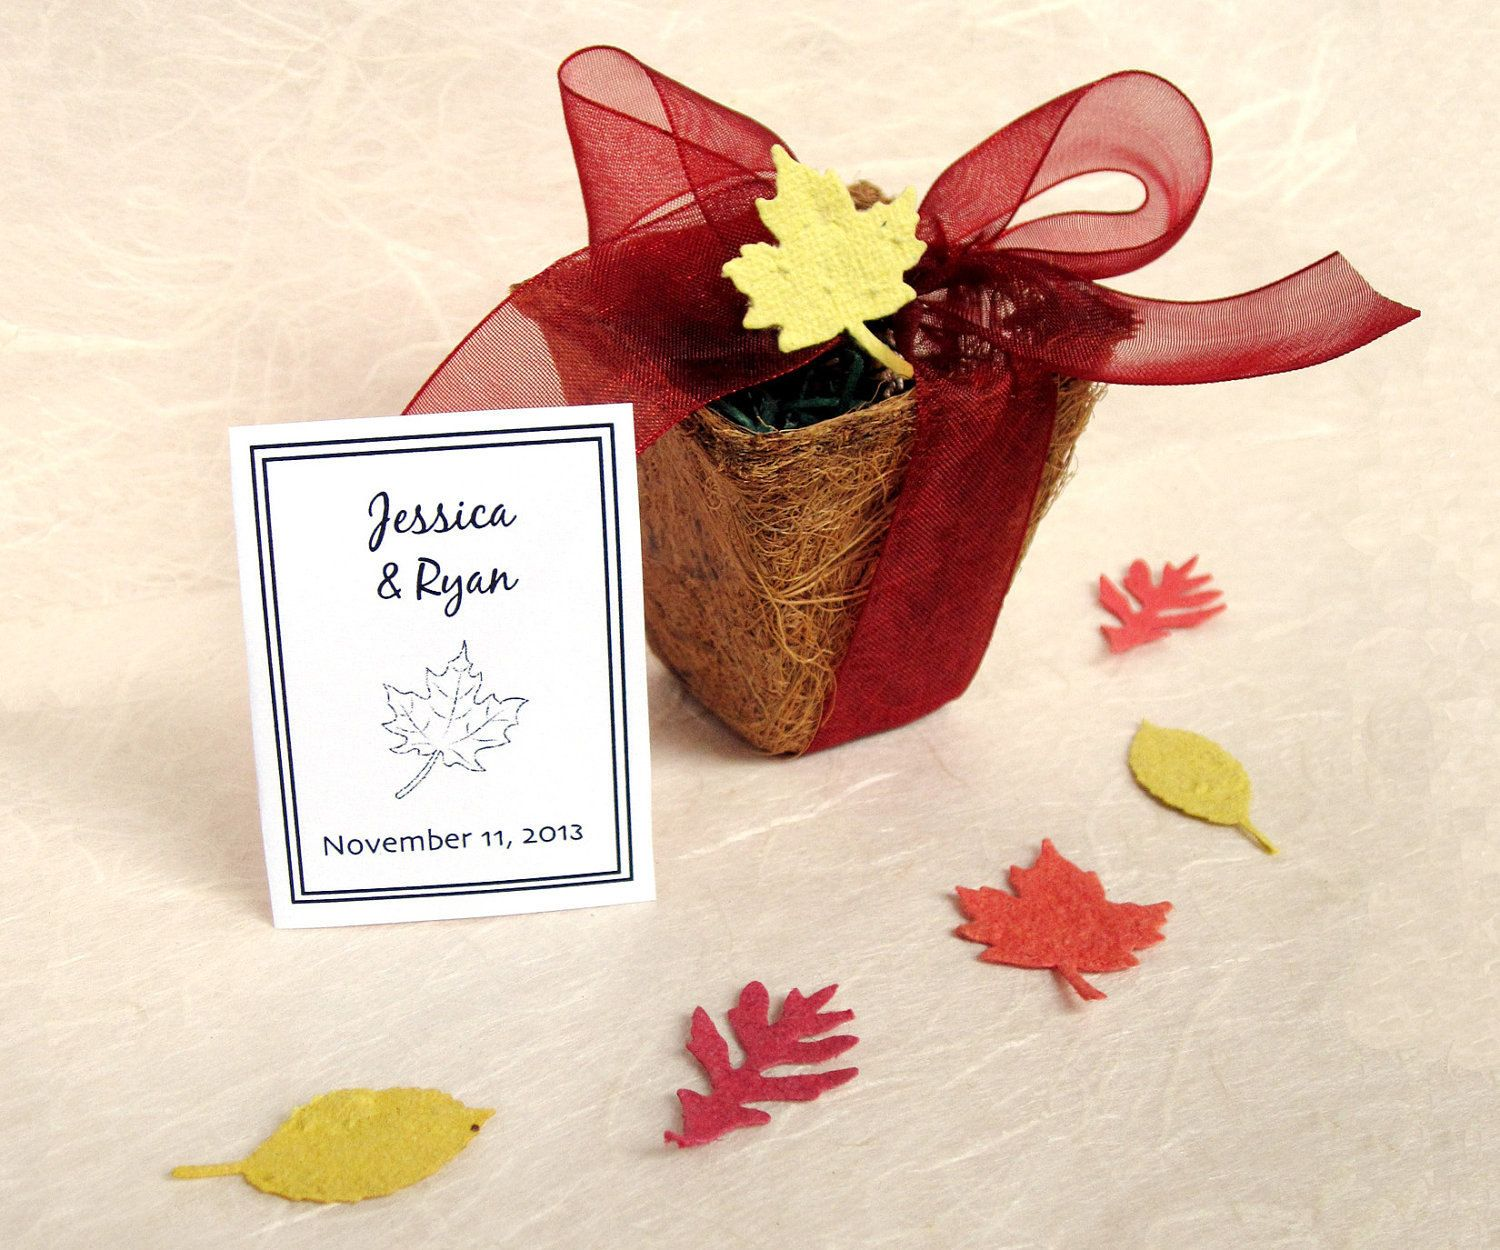 30 Seed Wedding Favors - Plantable Pots and Confetti Seed Paper ...